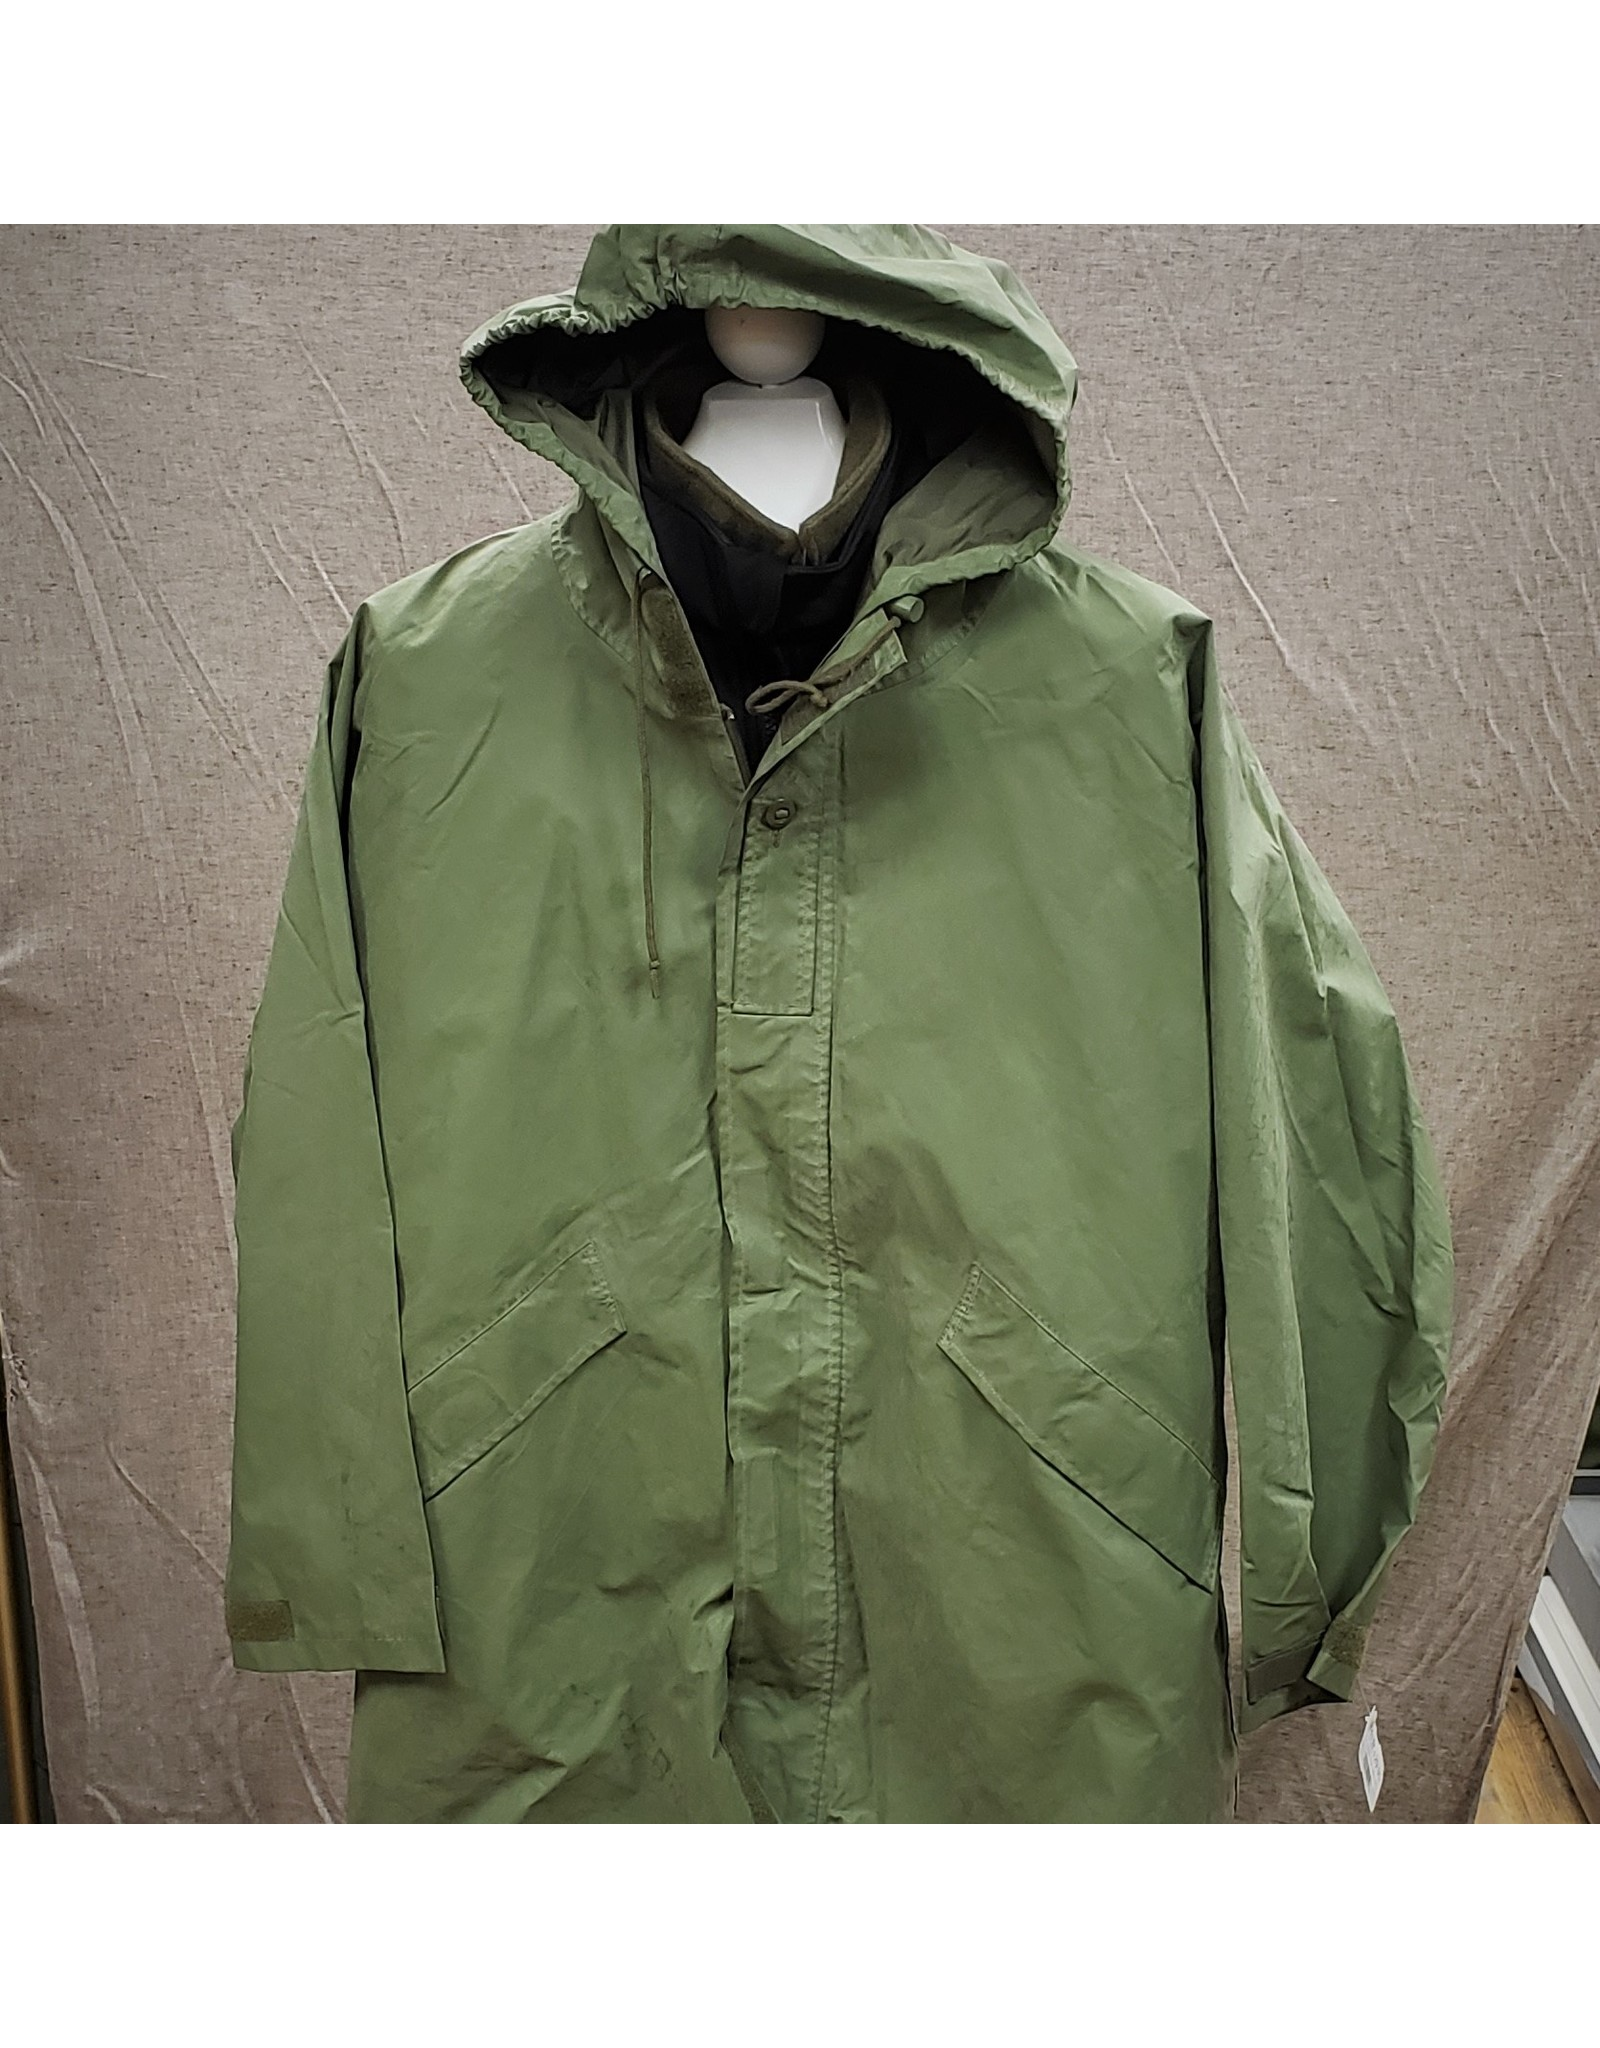 SURPLUS CANADIAN OLIVE RAIN JACKET